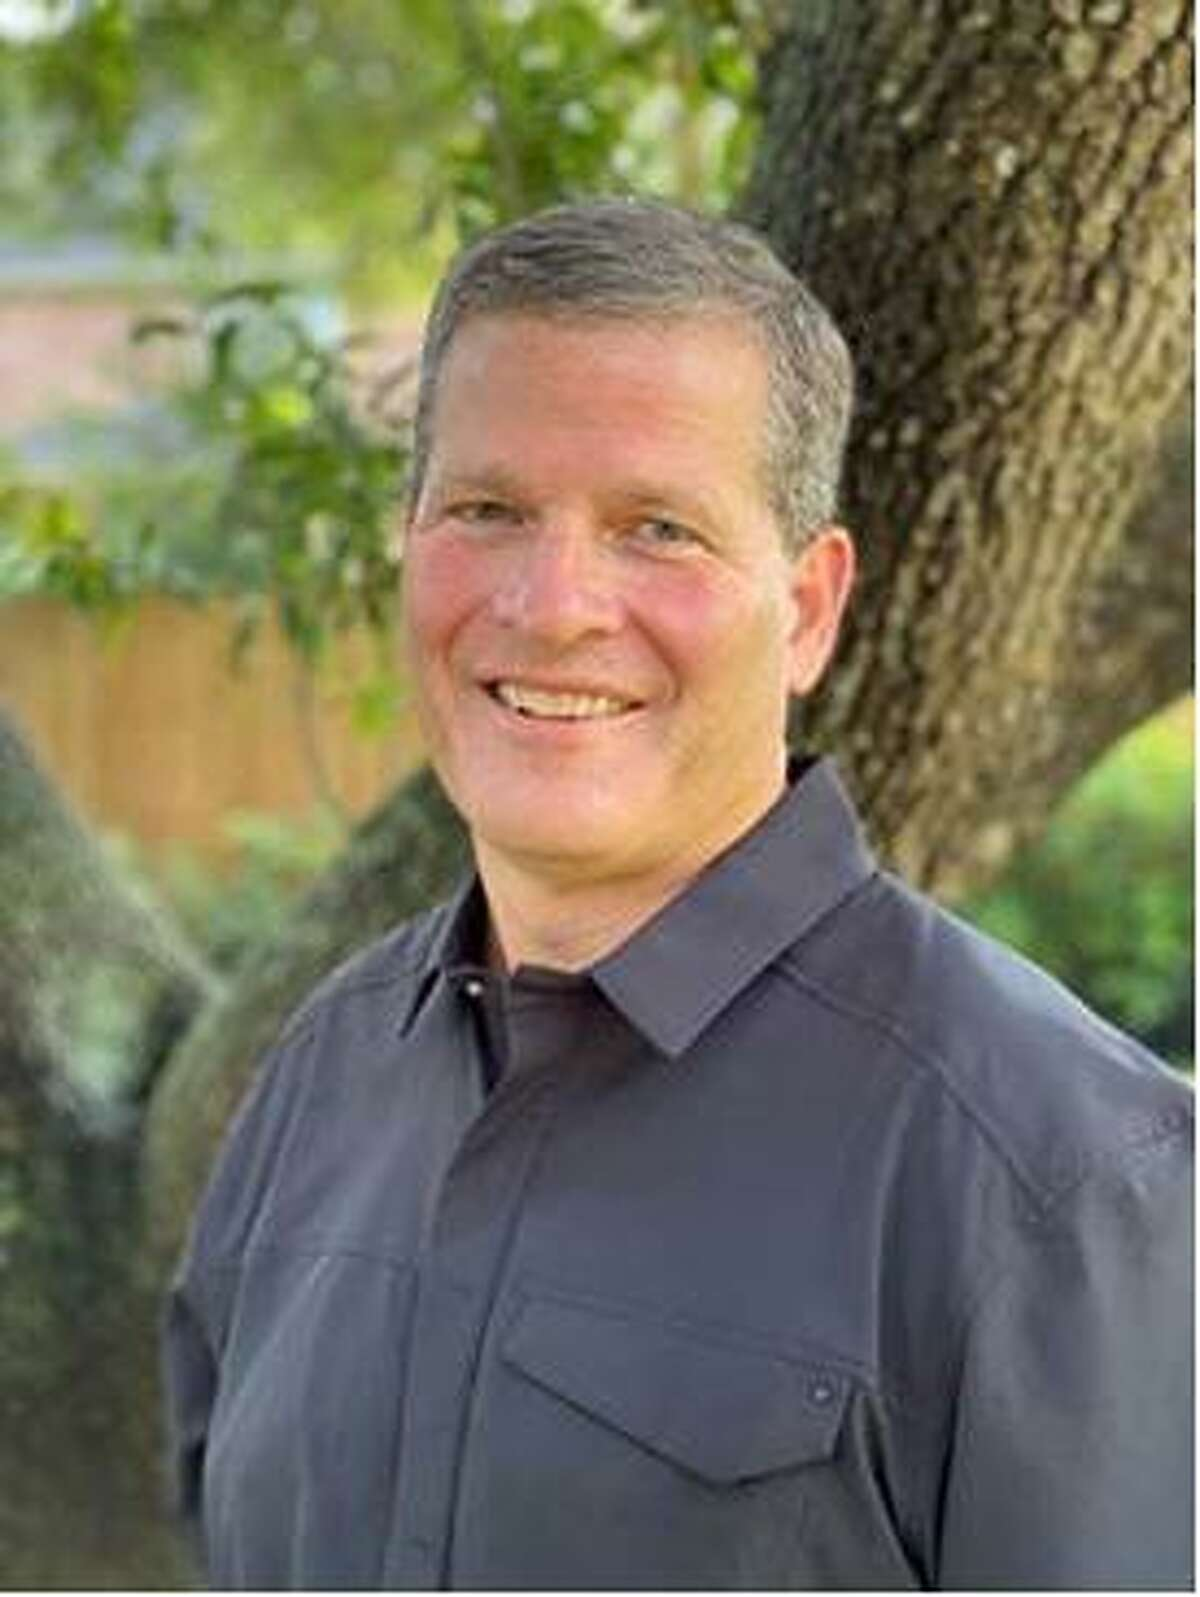 According to unofficial election results, Greg Schulte has won the Katy Independent School District Board of Trustees Position 5 seat.